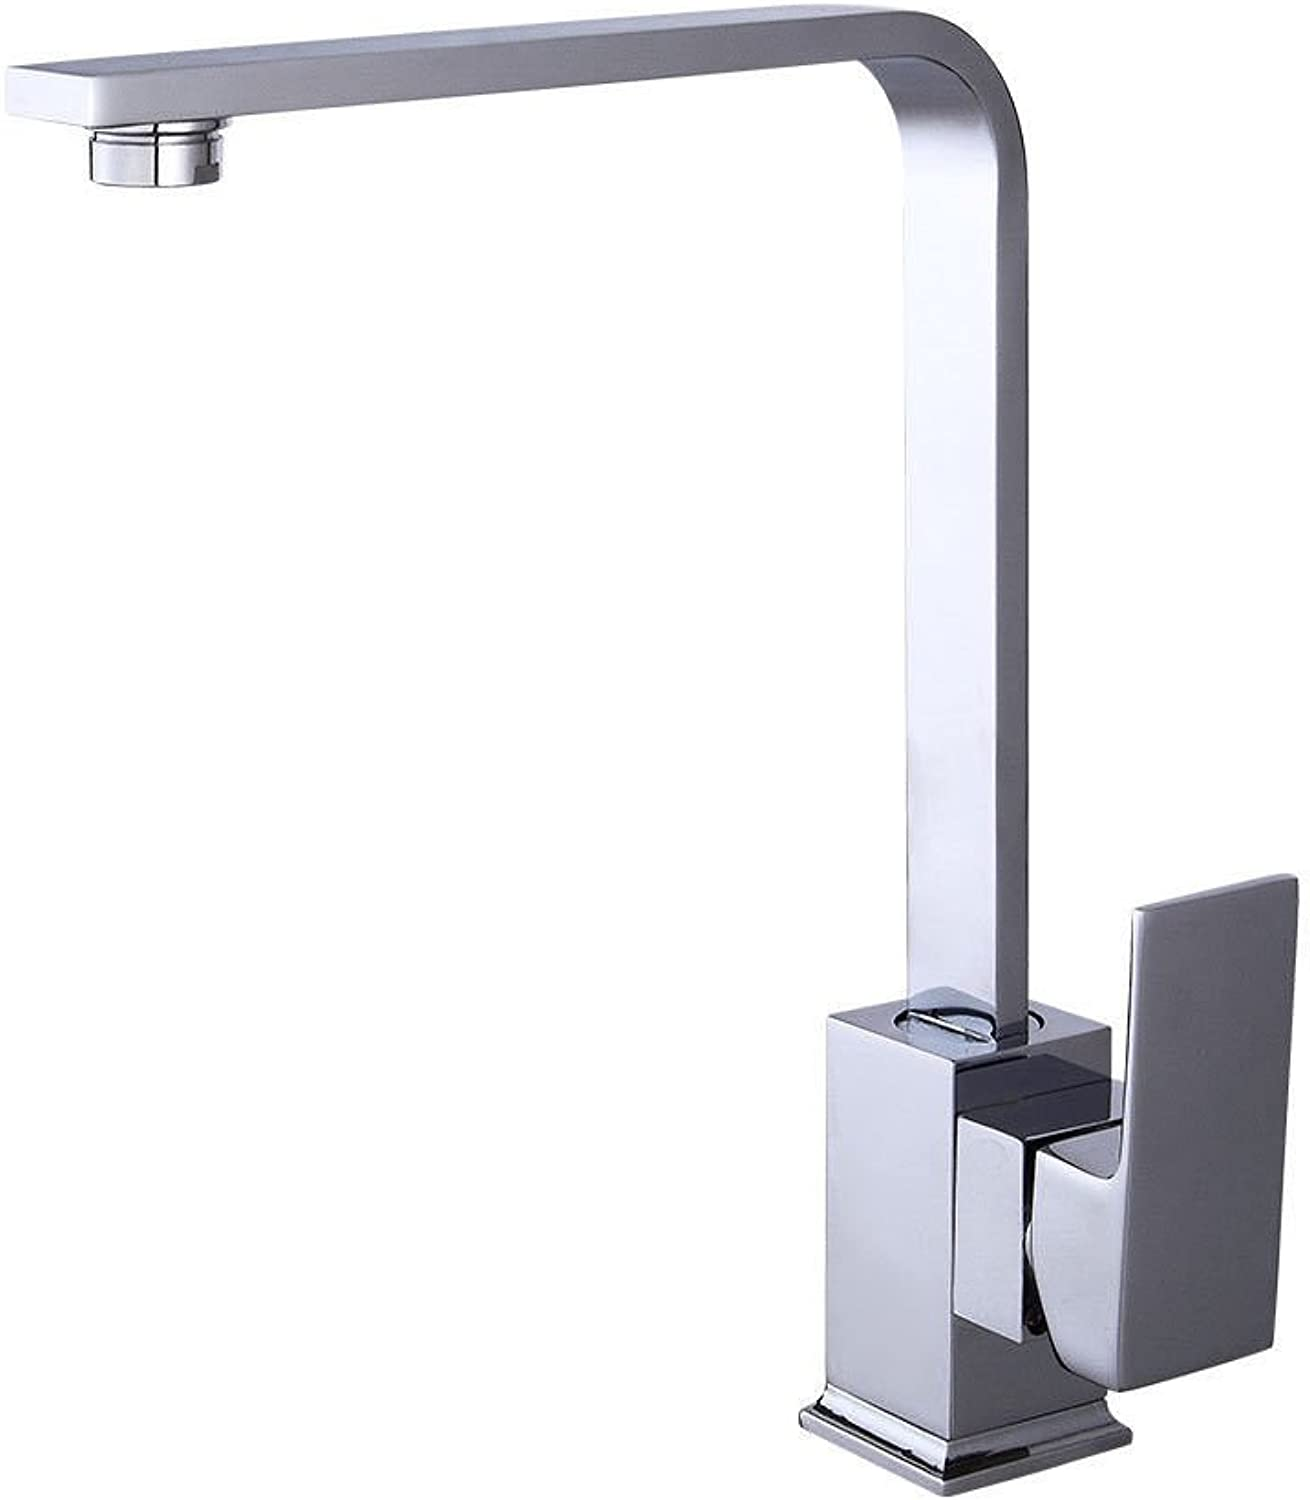 ETERNAL QUALITY Bathroom Sink Basin Tap Brass Mixer Tap Washroom Mixer Faucet Plated kitchen faucet the hot and cold water mixing valve faucet kitchen dish basin sink fau